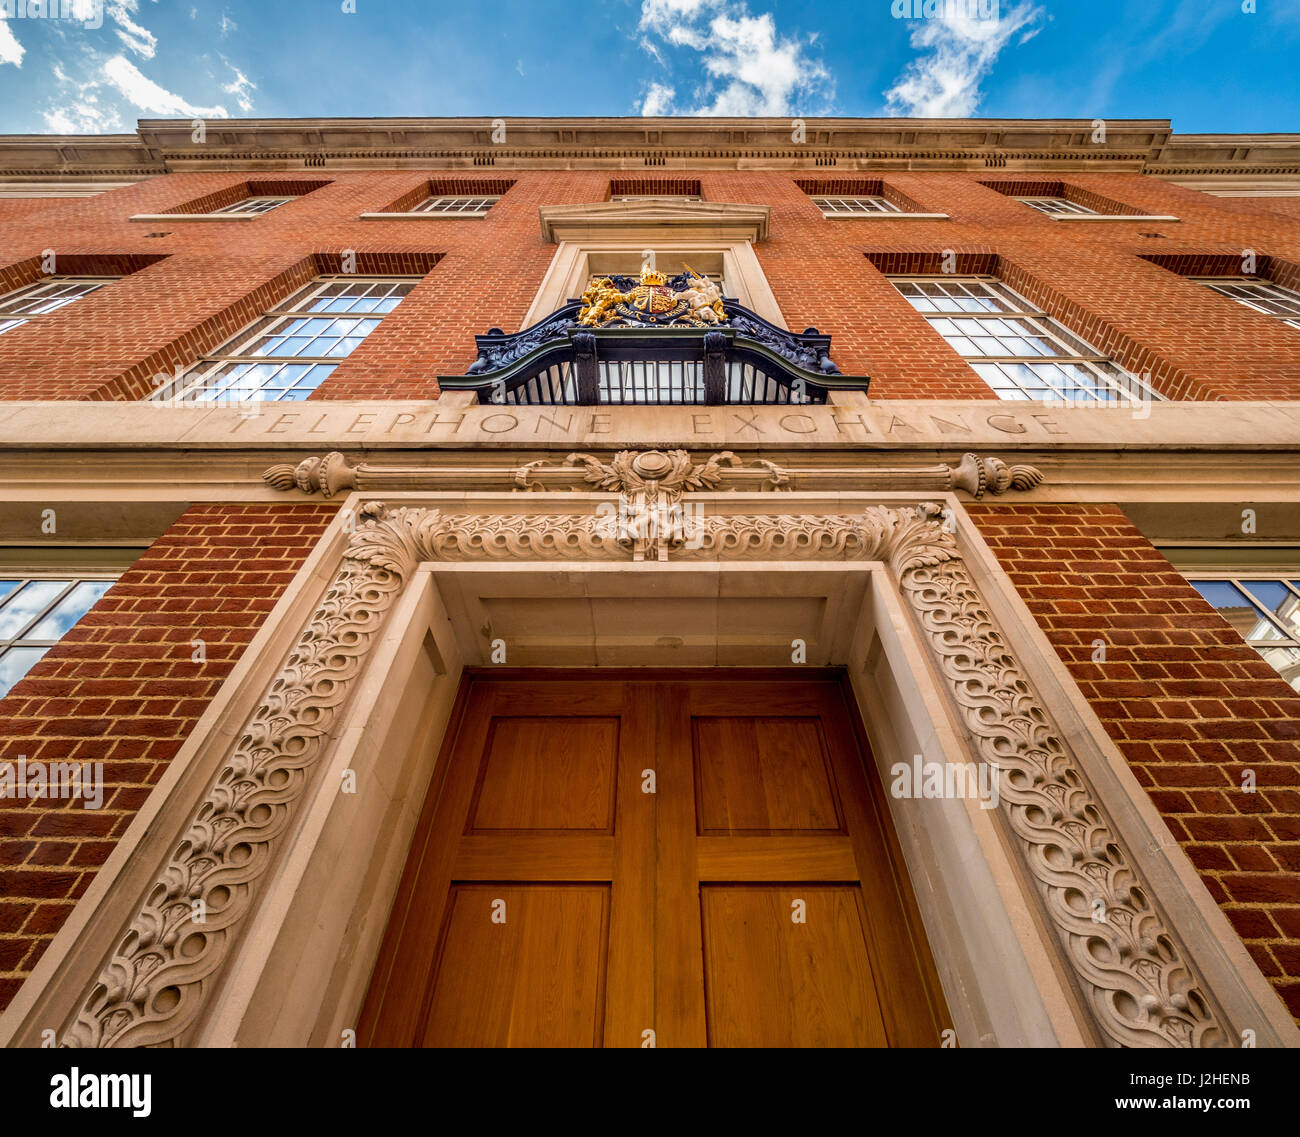 Grade II Listed former telephone exchange building, Sloane Square, London, UK. - Stock Image